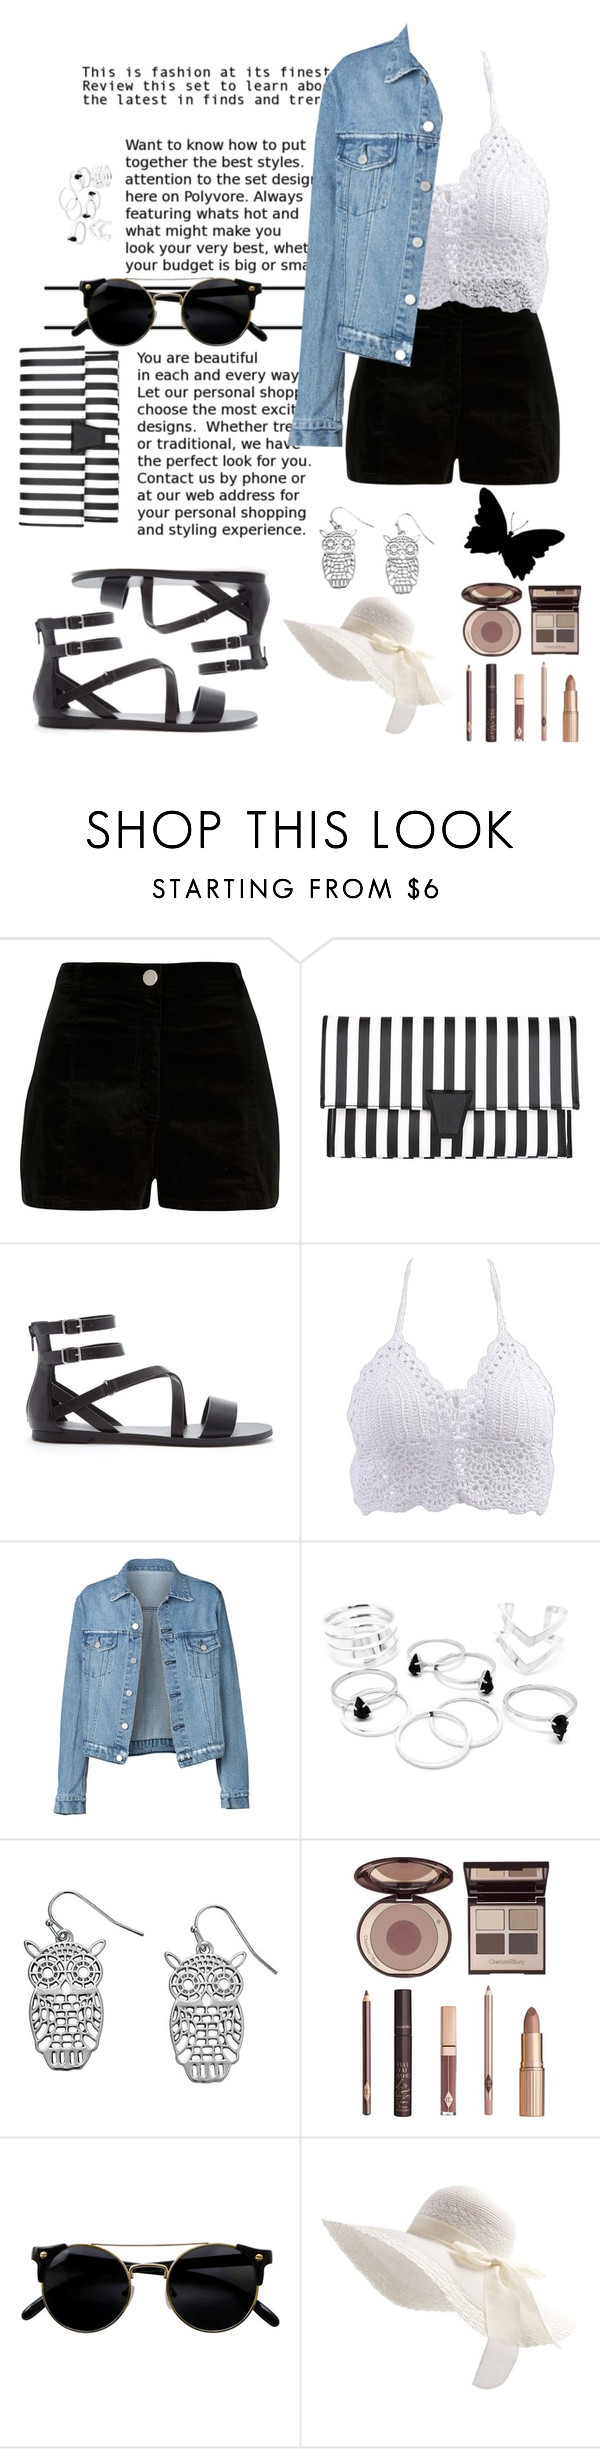 """Untitled #60"" by rumeysa-aydnl ❤ liked on Polyvore featuring River Island, Forever 21 and Charlotte Tilbury"